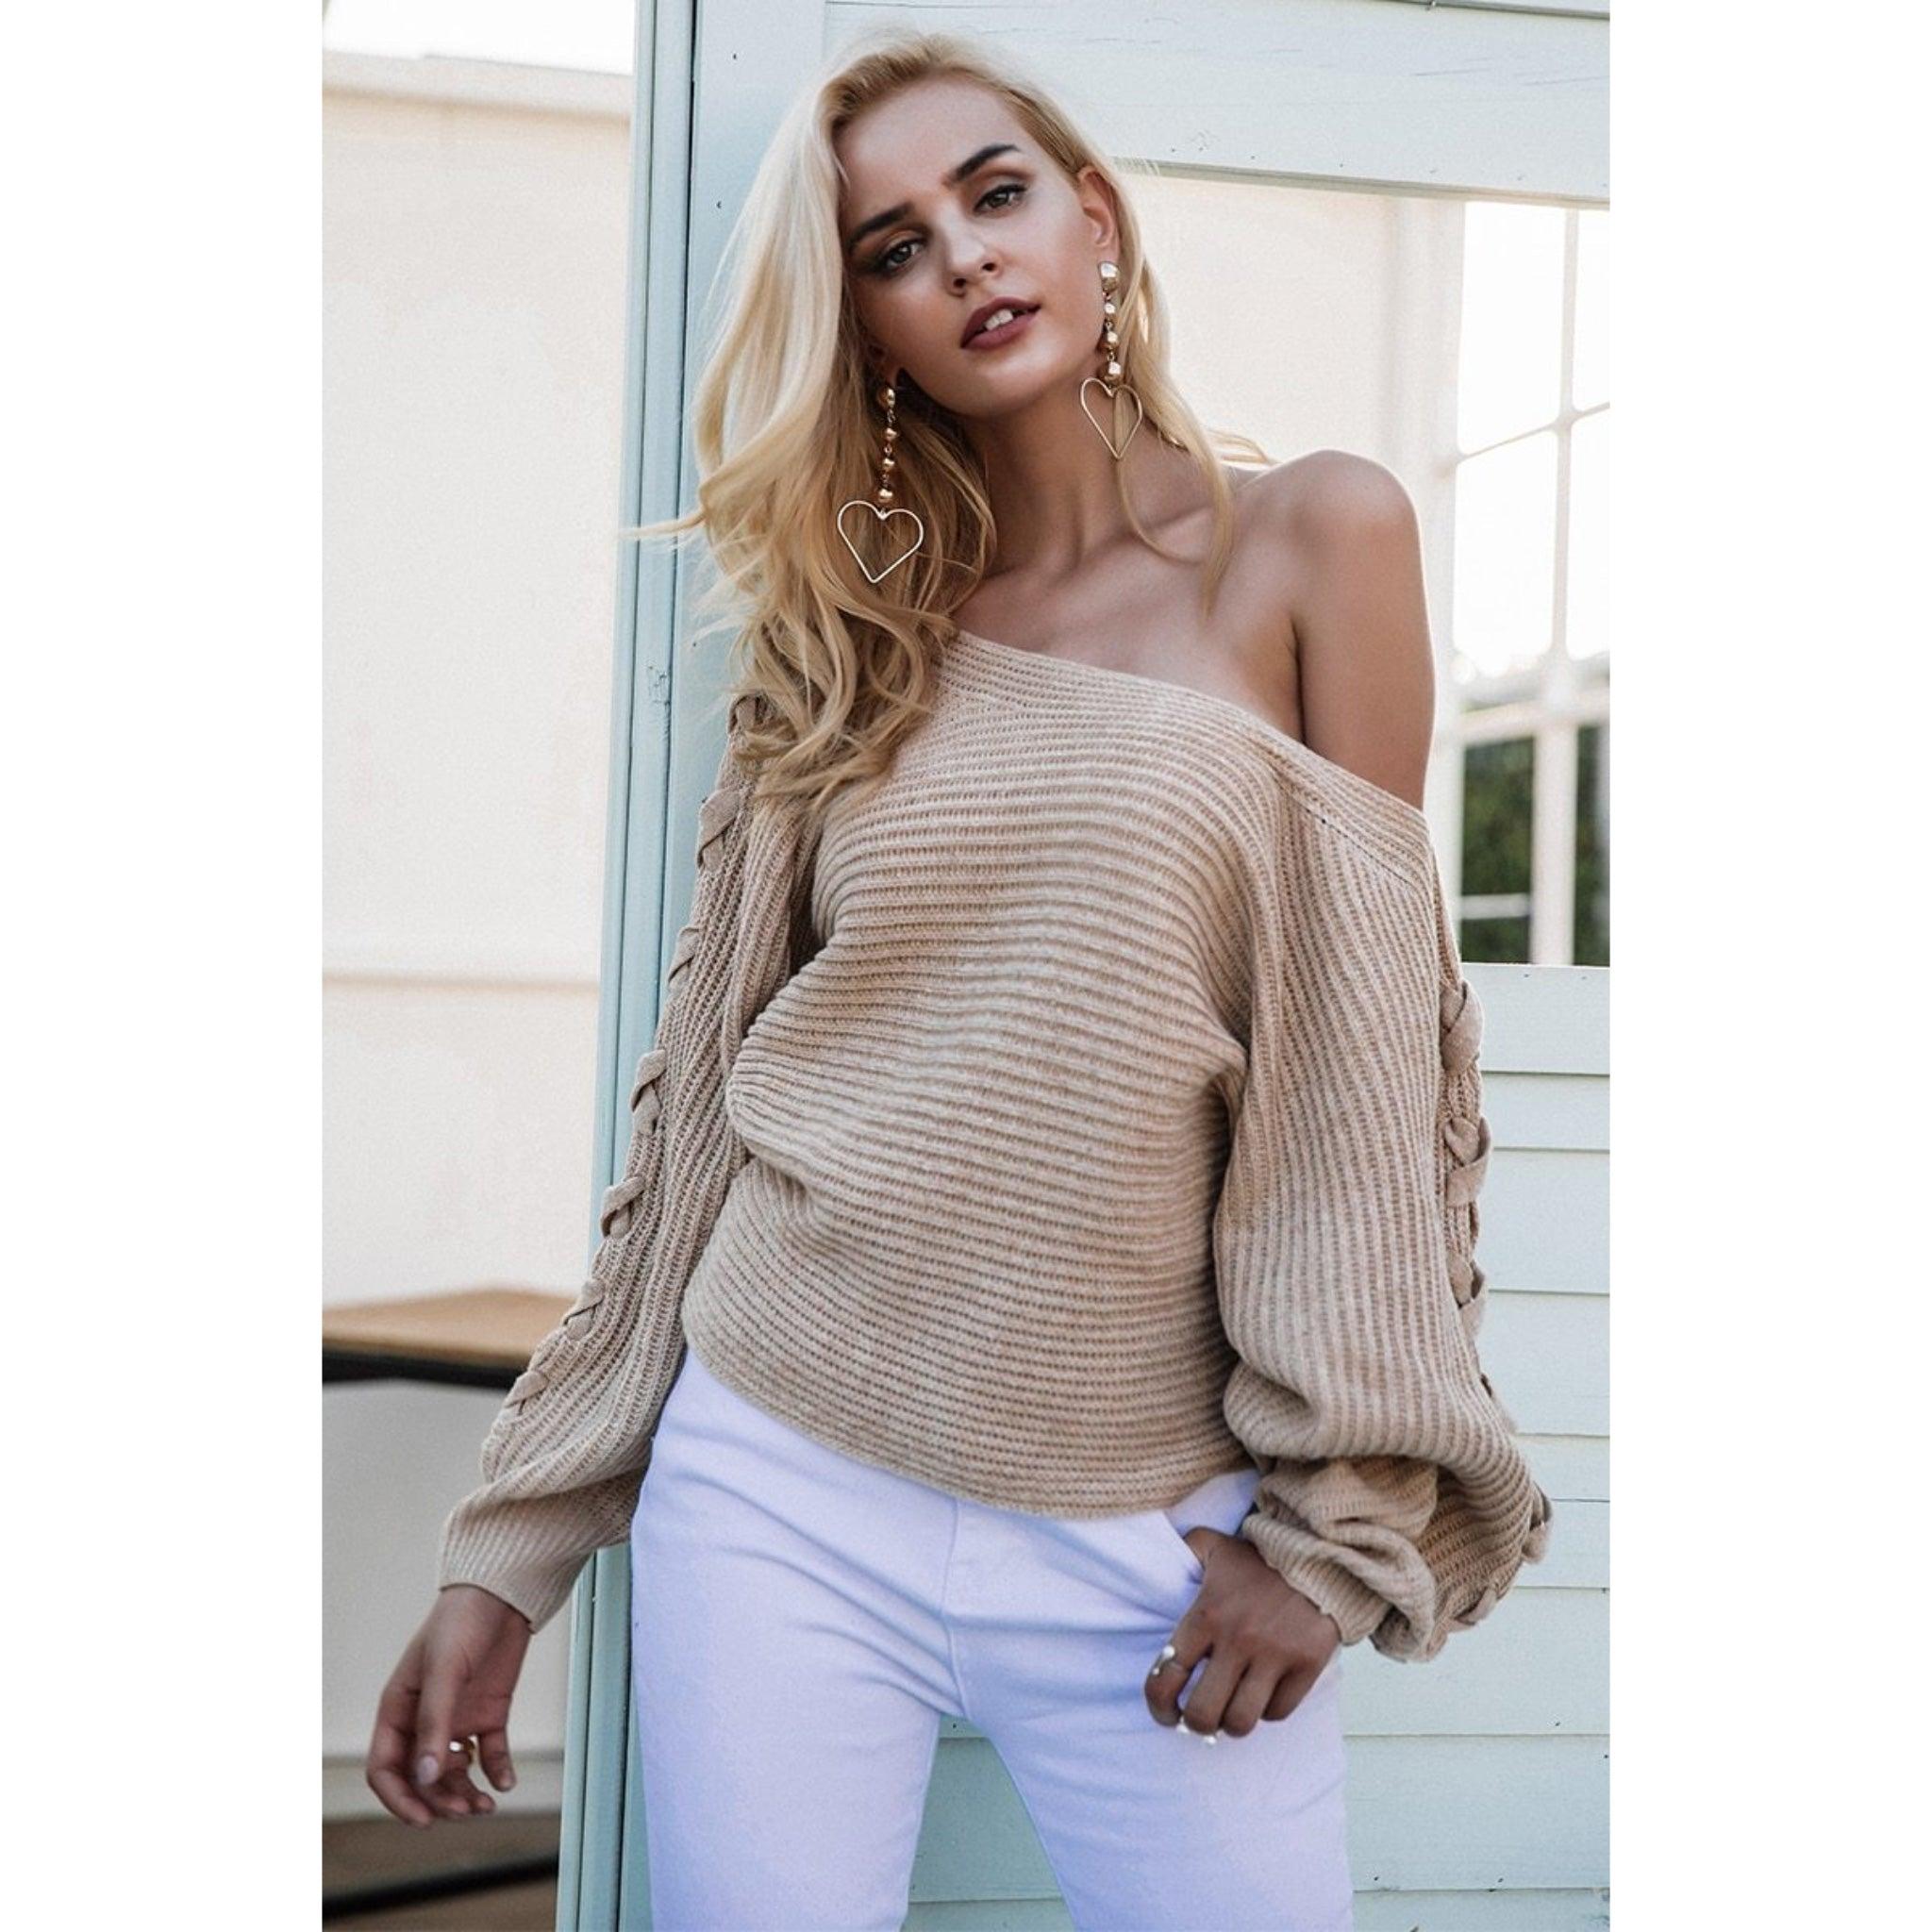 Lace Up Sleeve Sweater with Batwing sleeves and One shoulder sweater design